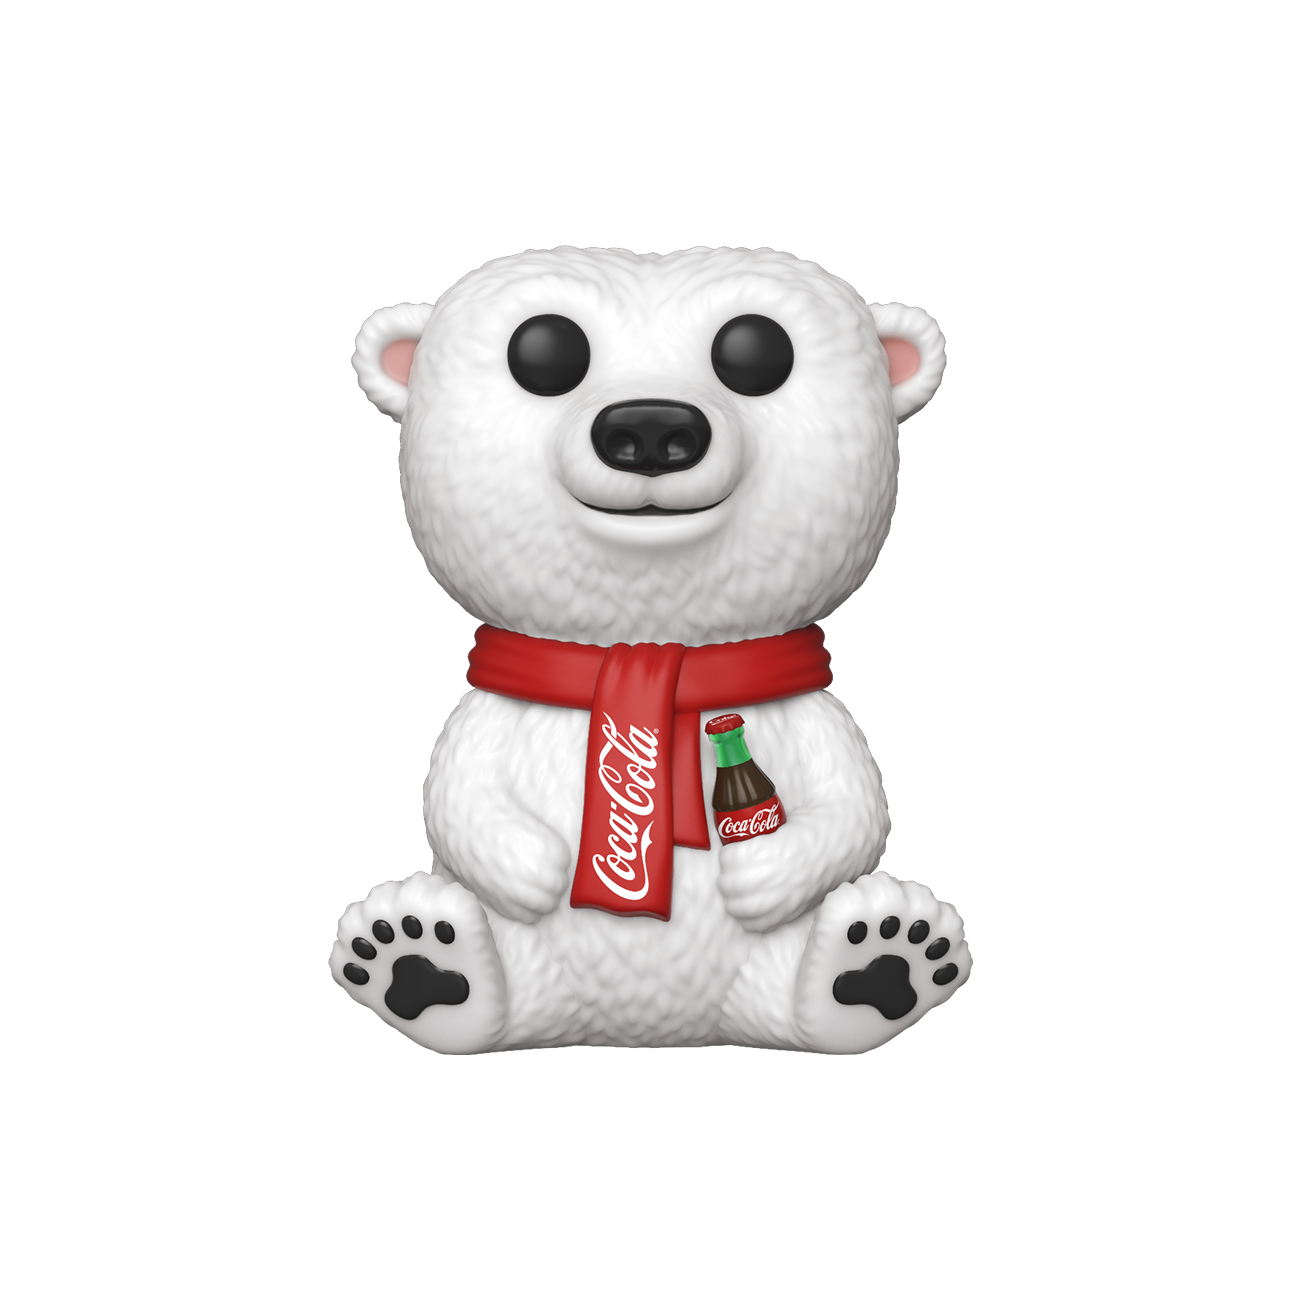 Funko Ad Icons!: Coca-cola Bear Funko POP! #58